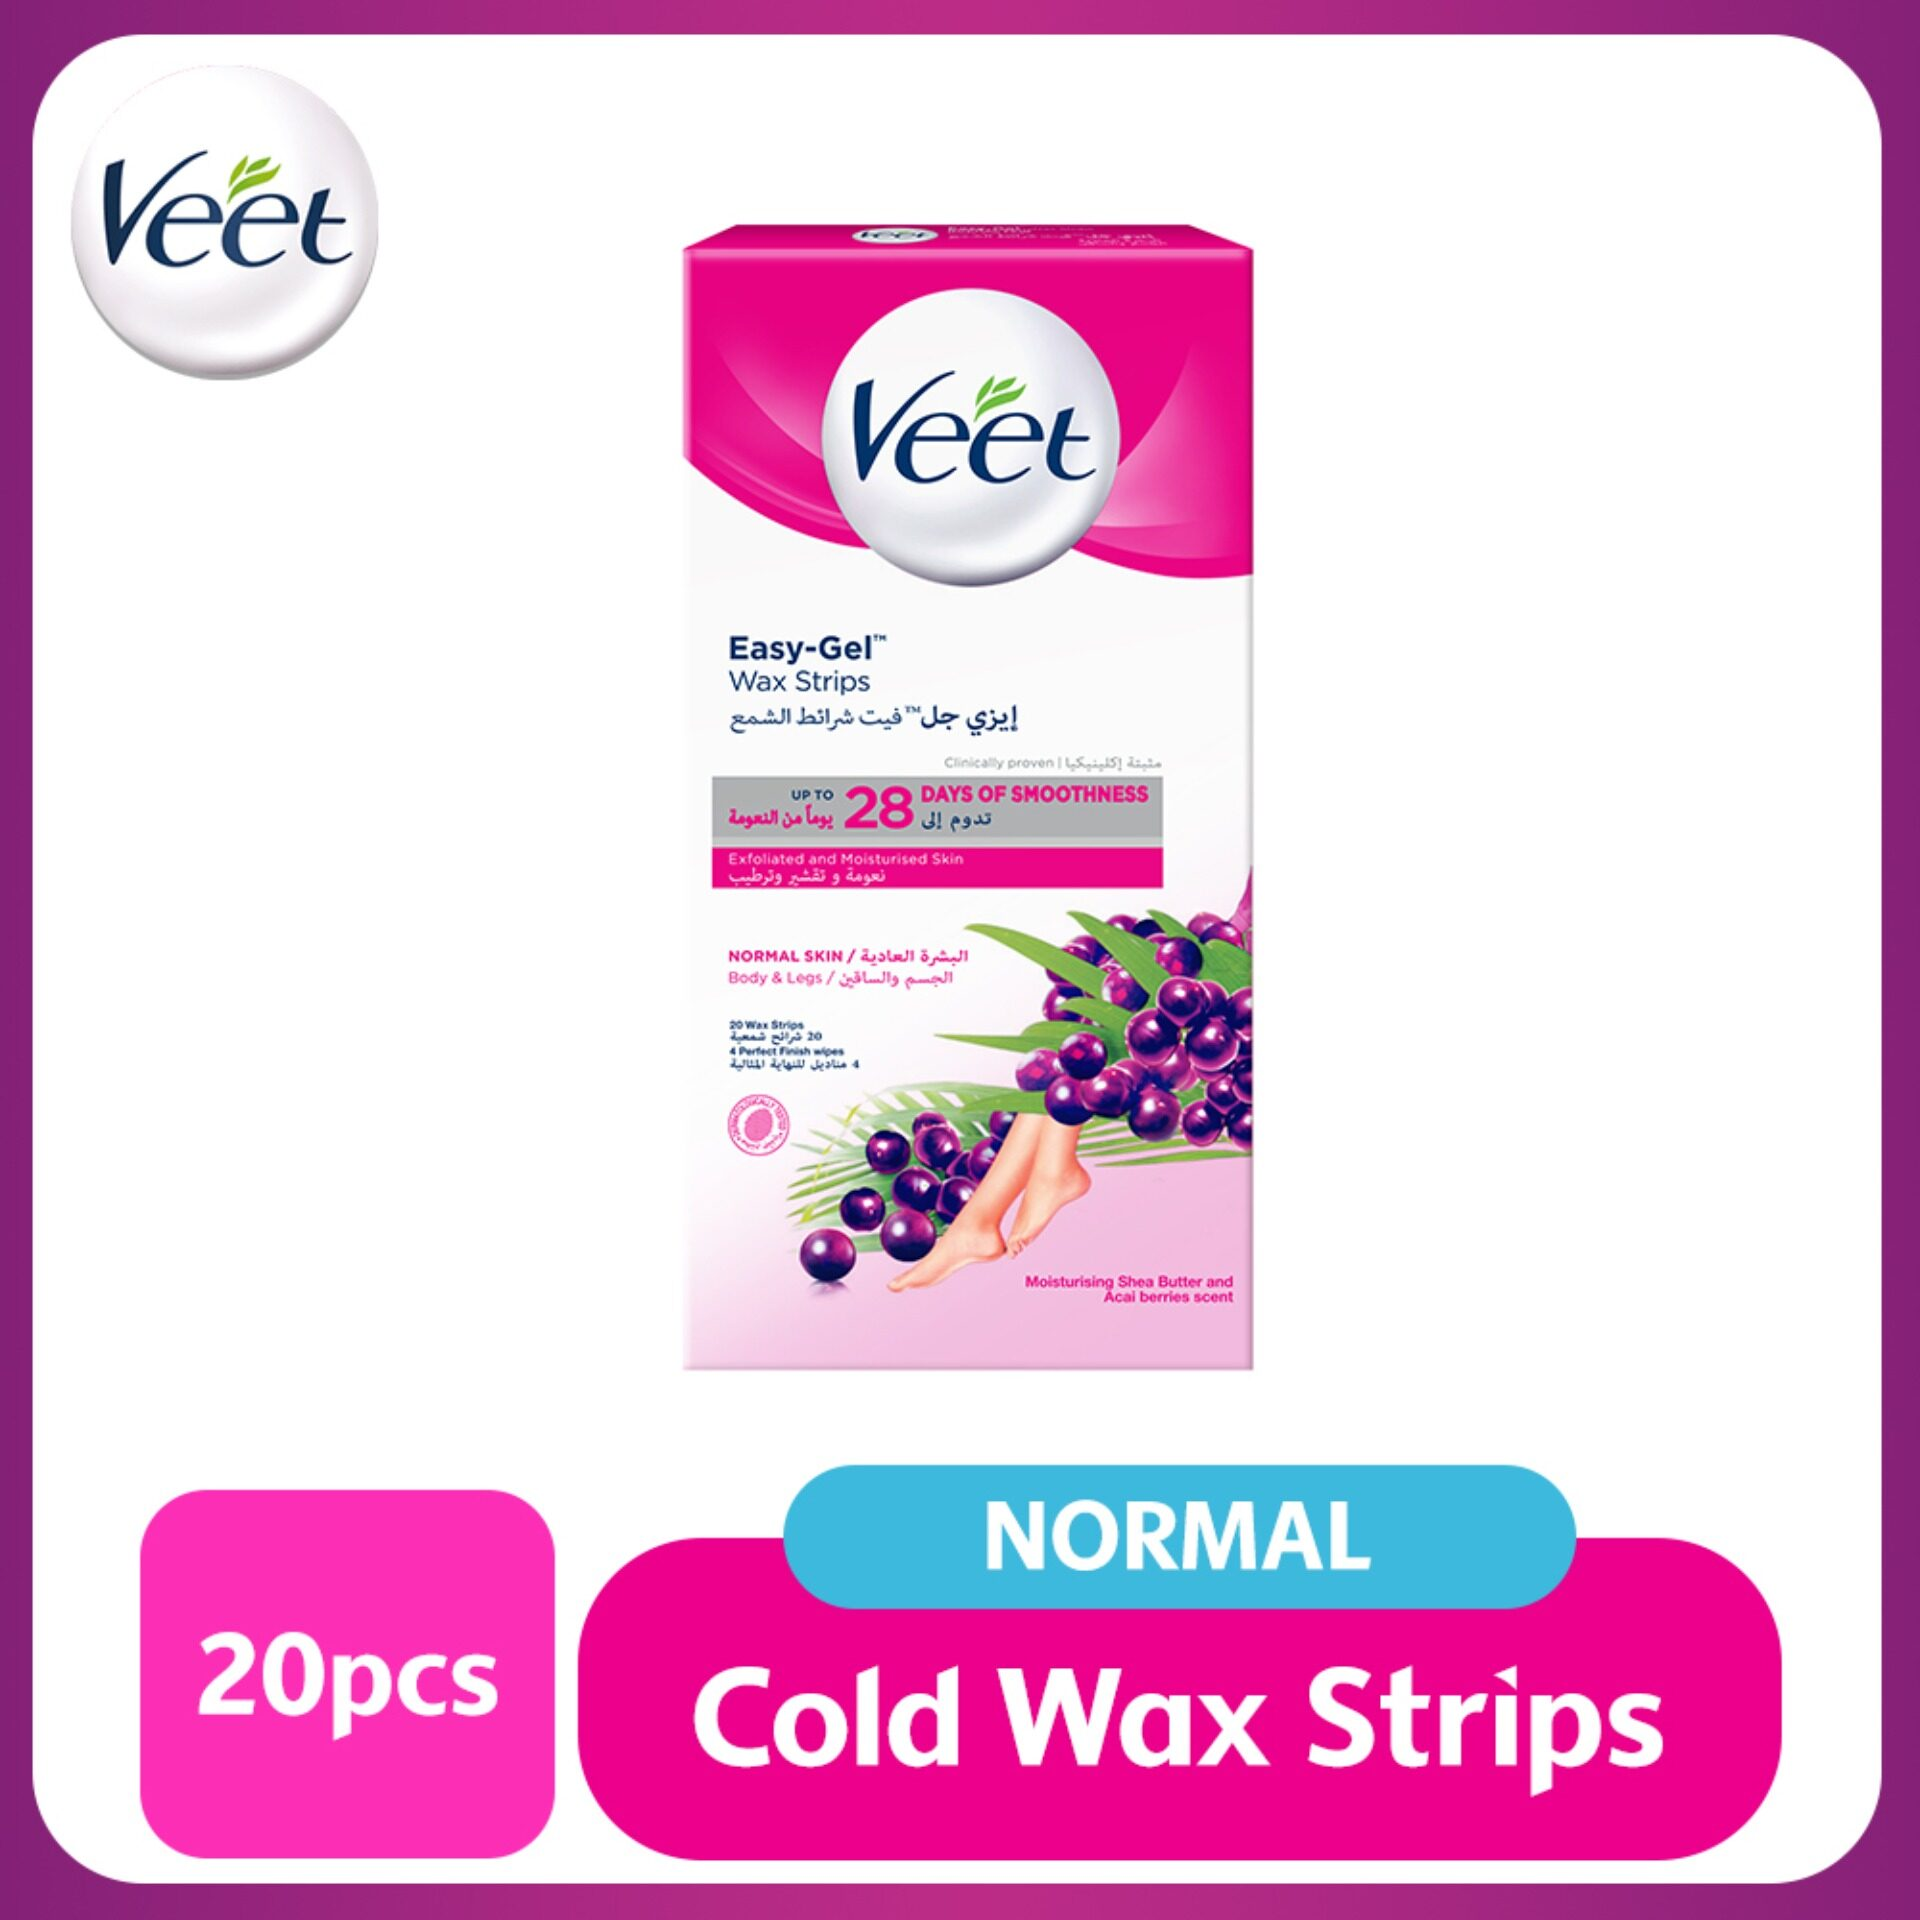 Veet Products For The Best Prices In Malaysia